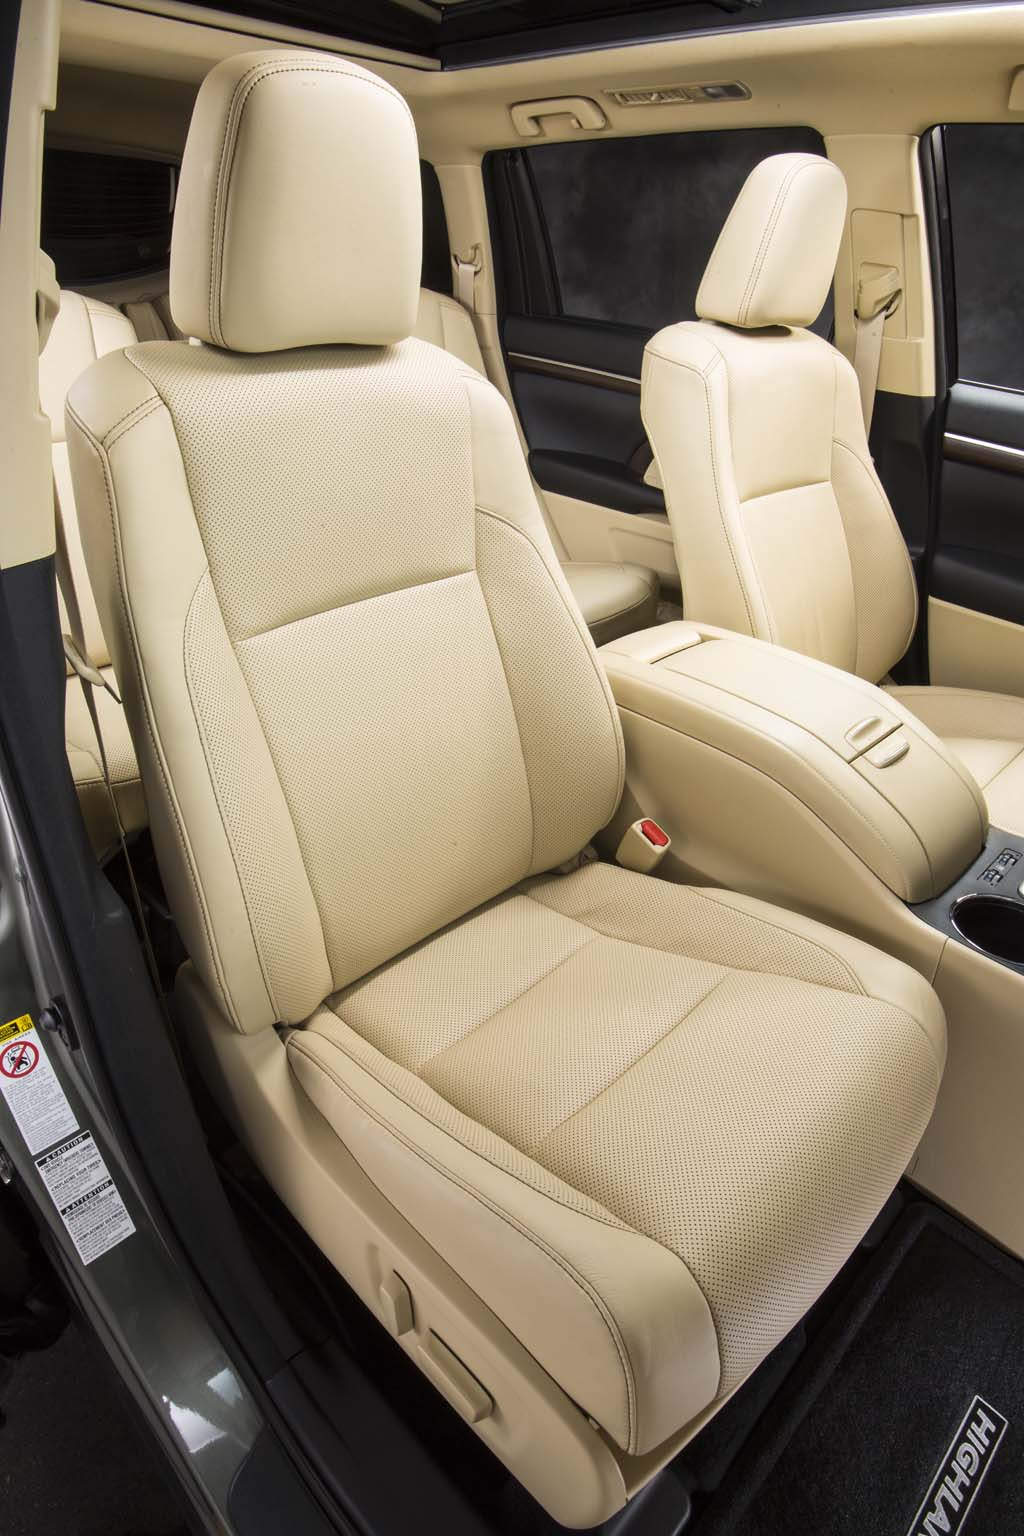 Toyota Highlander Captains Chairs First Drive 2014 Toyota Highlander Thedetroitbureau